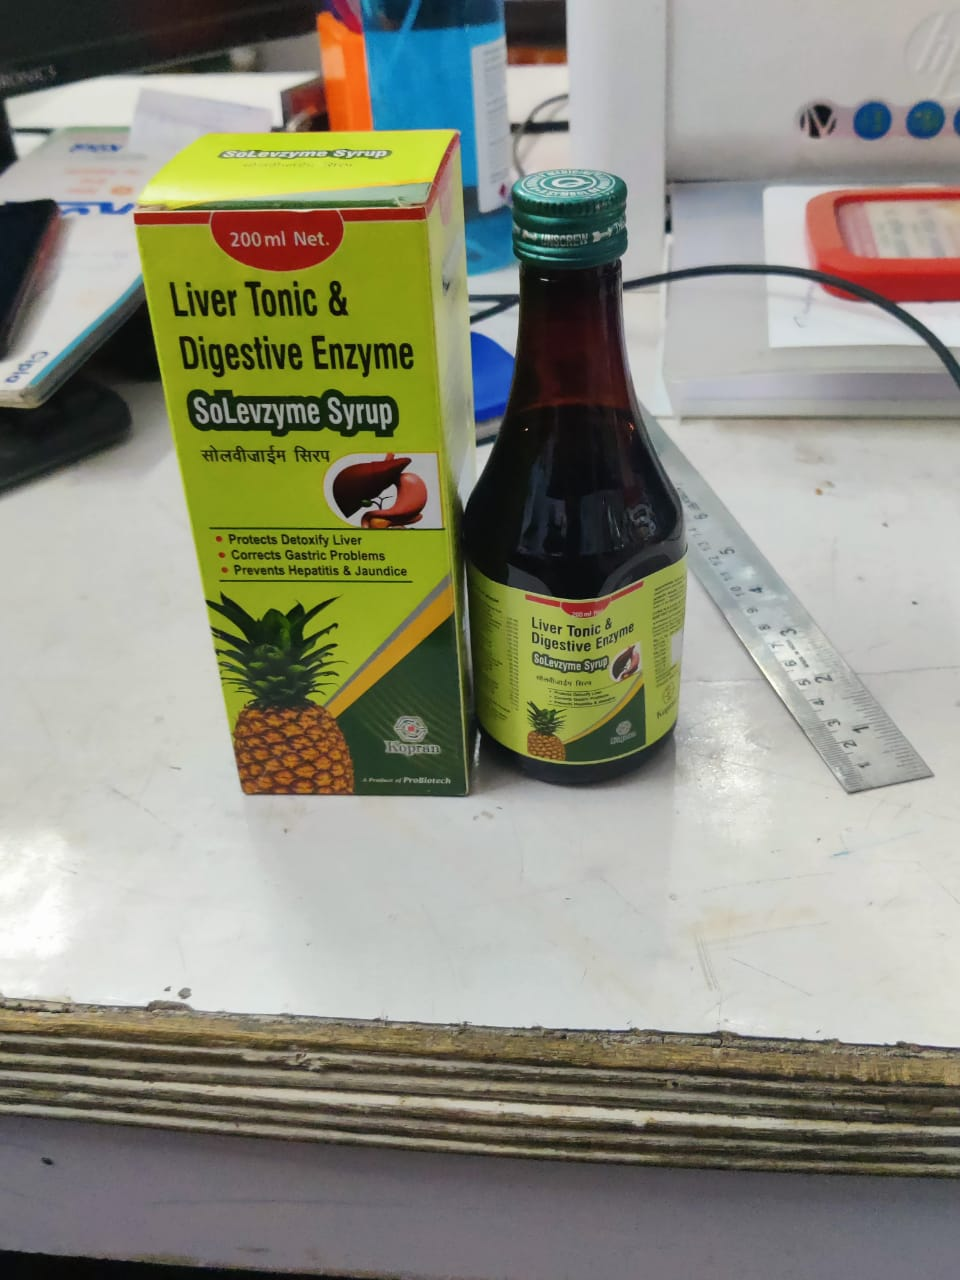 SOLEVZYME SYRUP 11/23